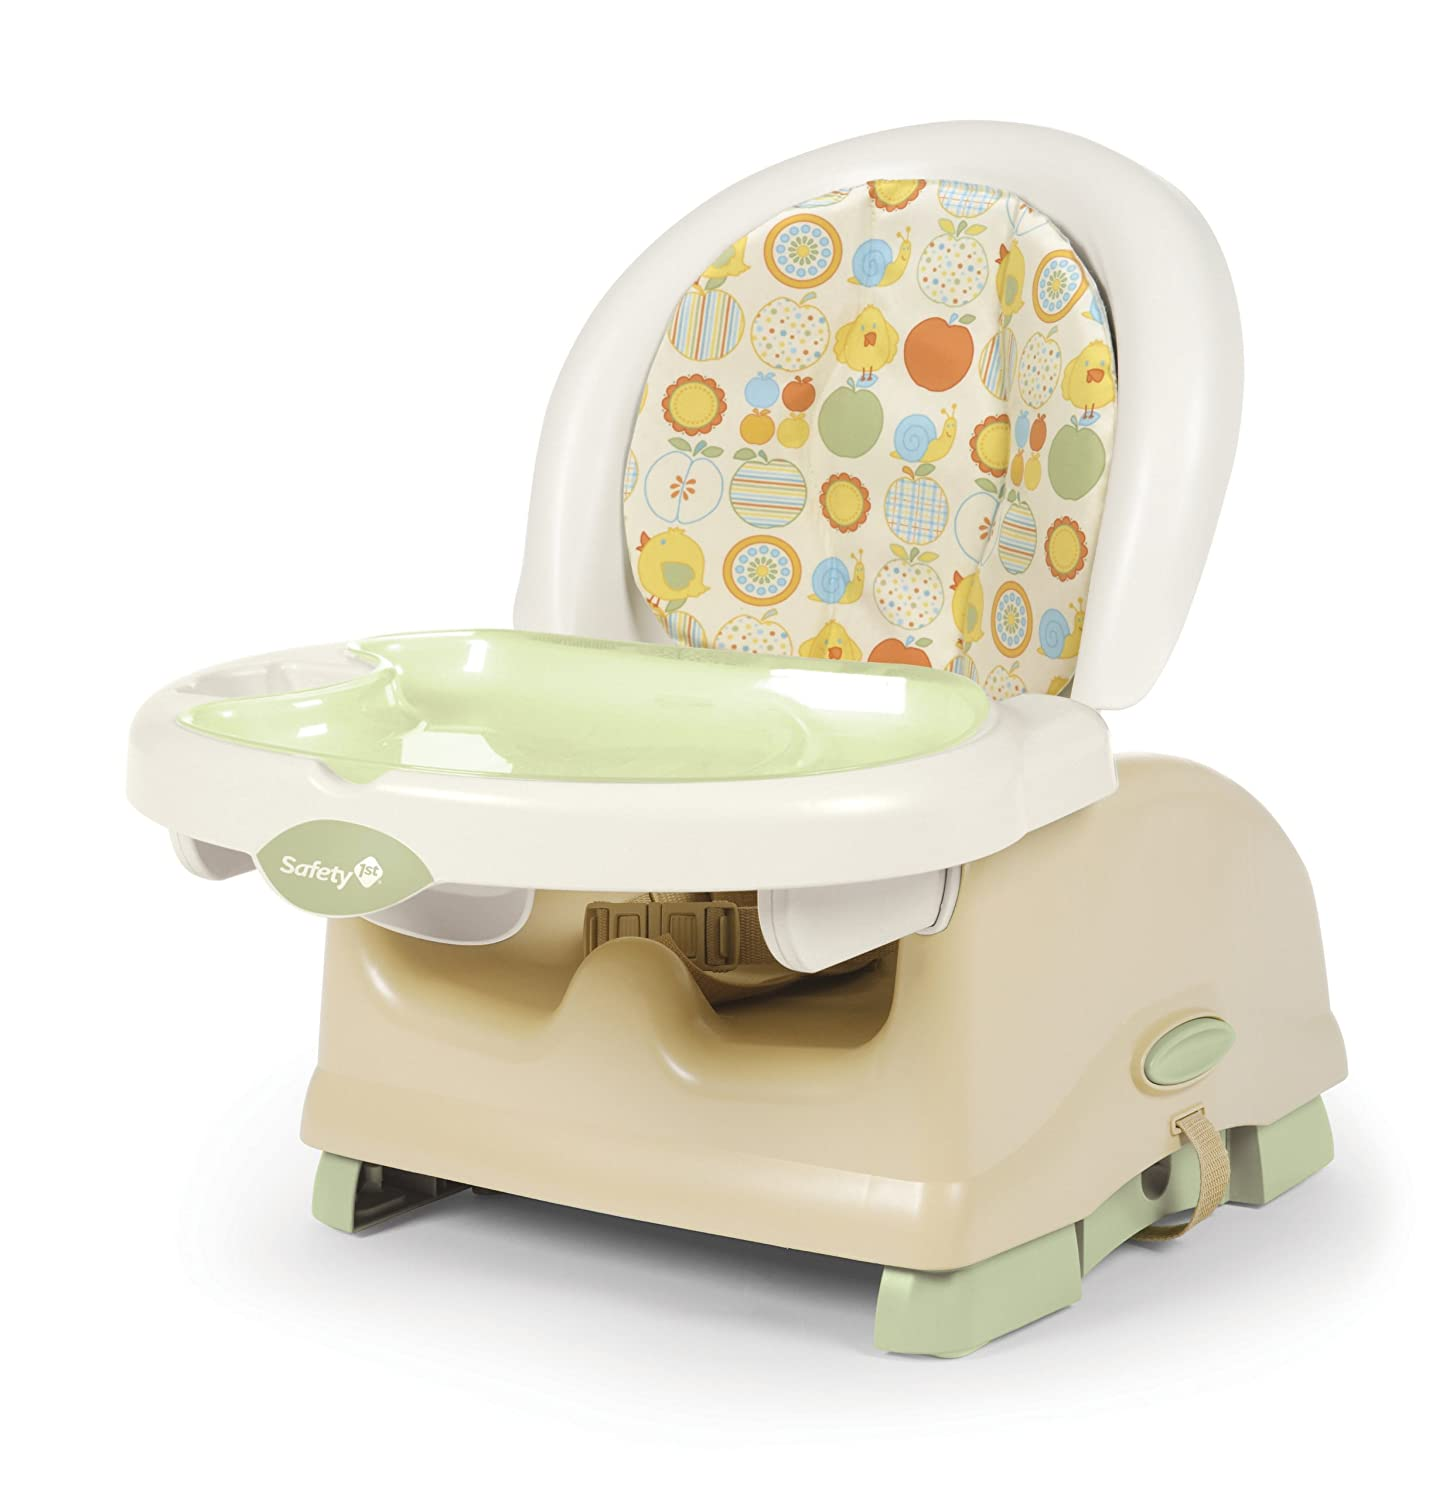 Safety 1st CAOM Recline and Grow 5 Stage Feeding Seat